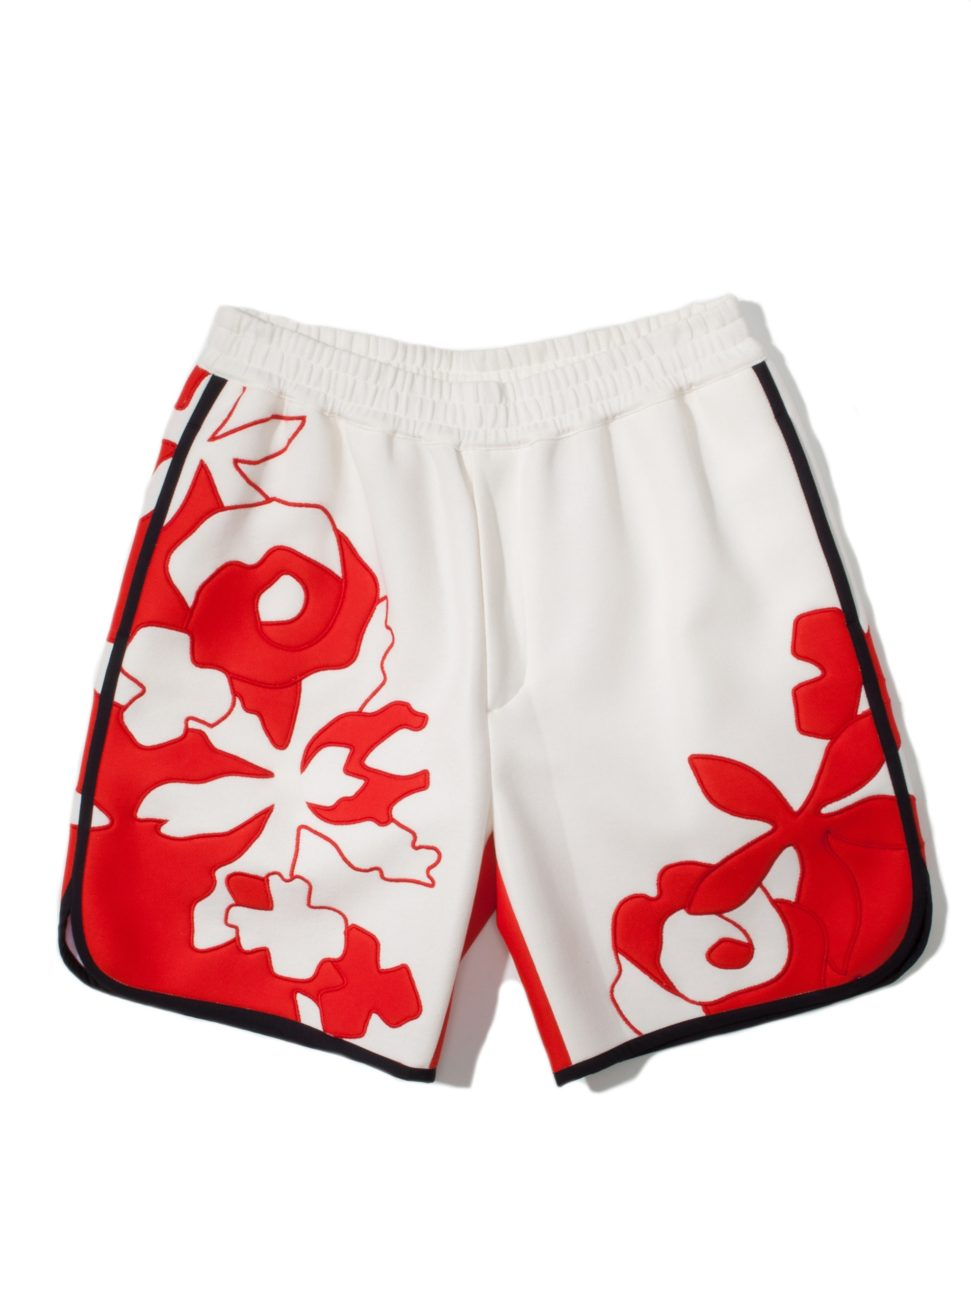 3.1 Phillip Lim Floral Applique Lounge Short